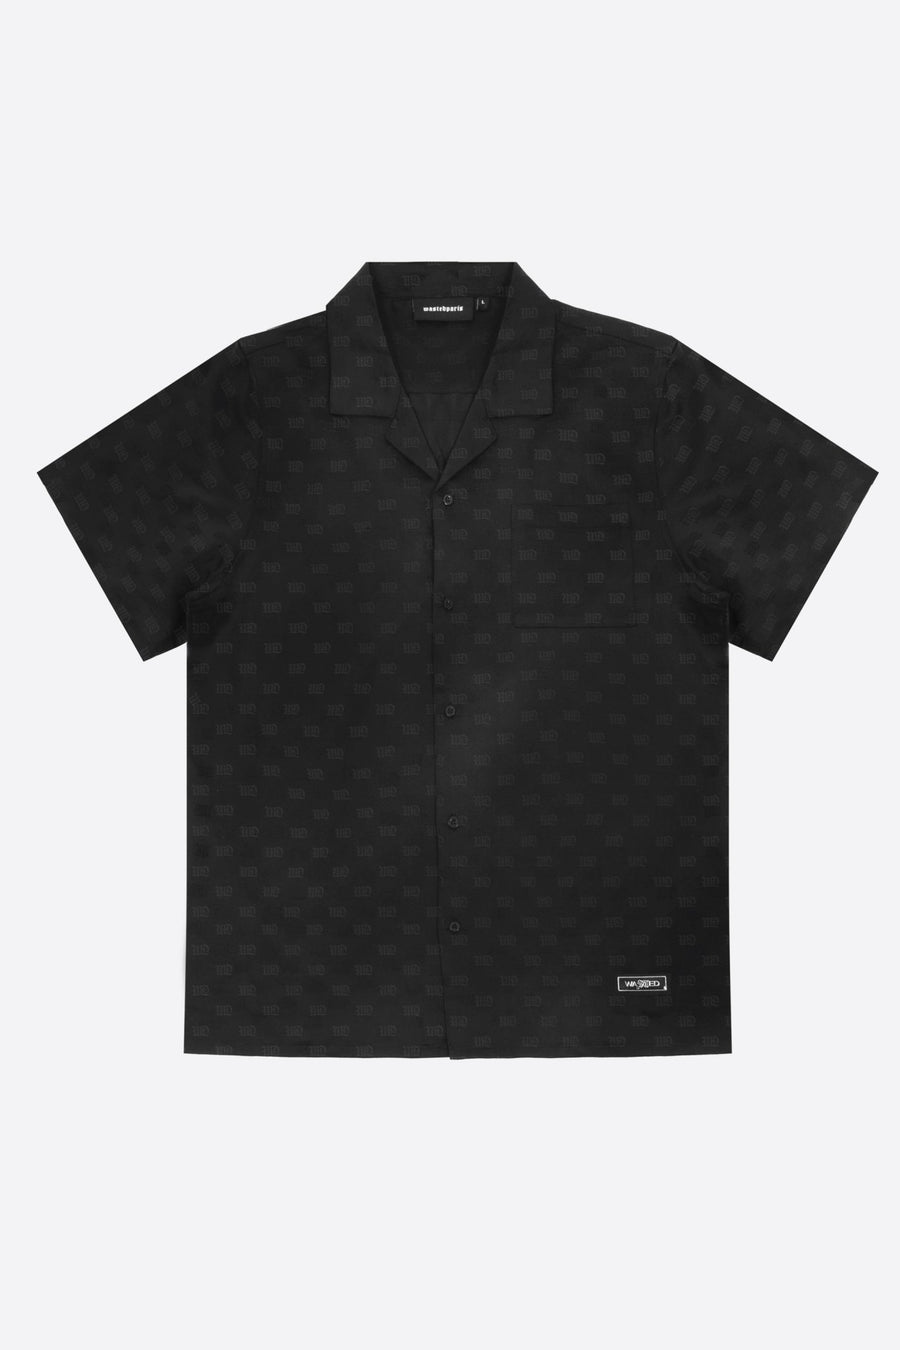 Chemise Monogram Noir - WASTED PARIS